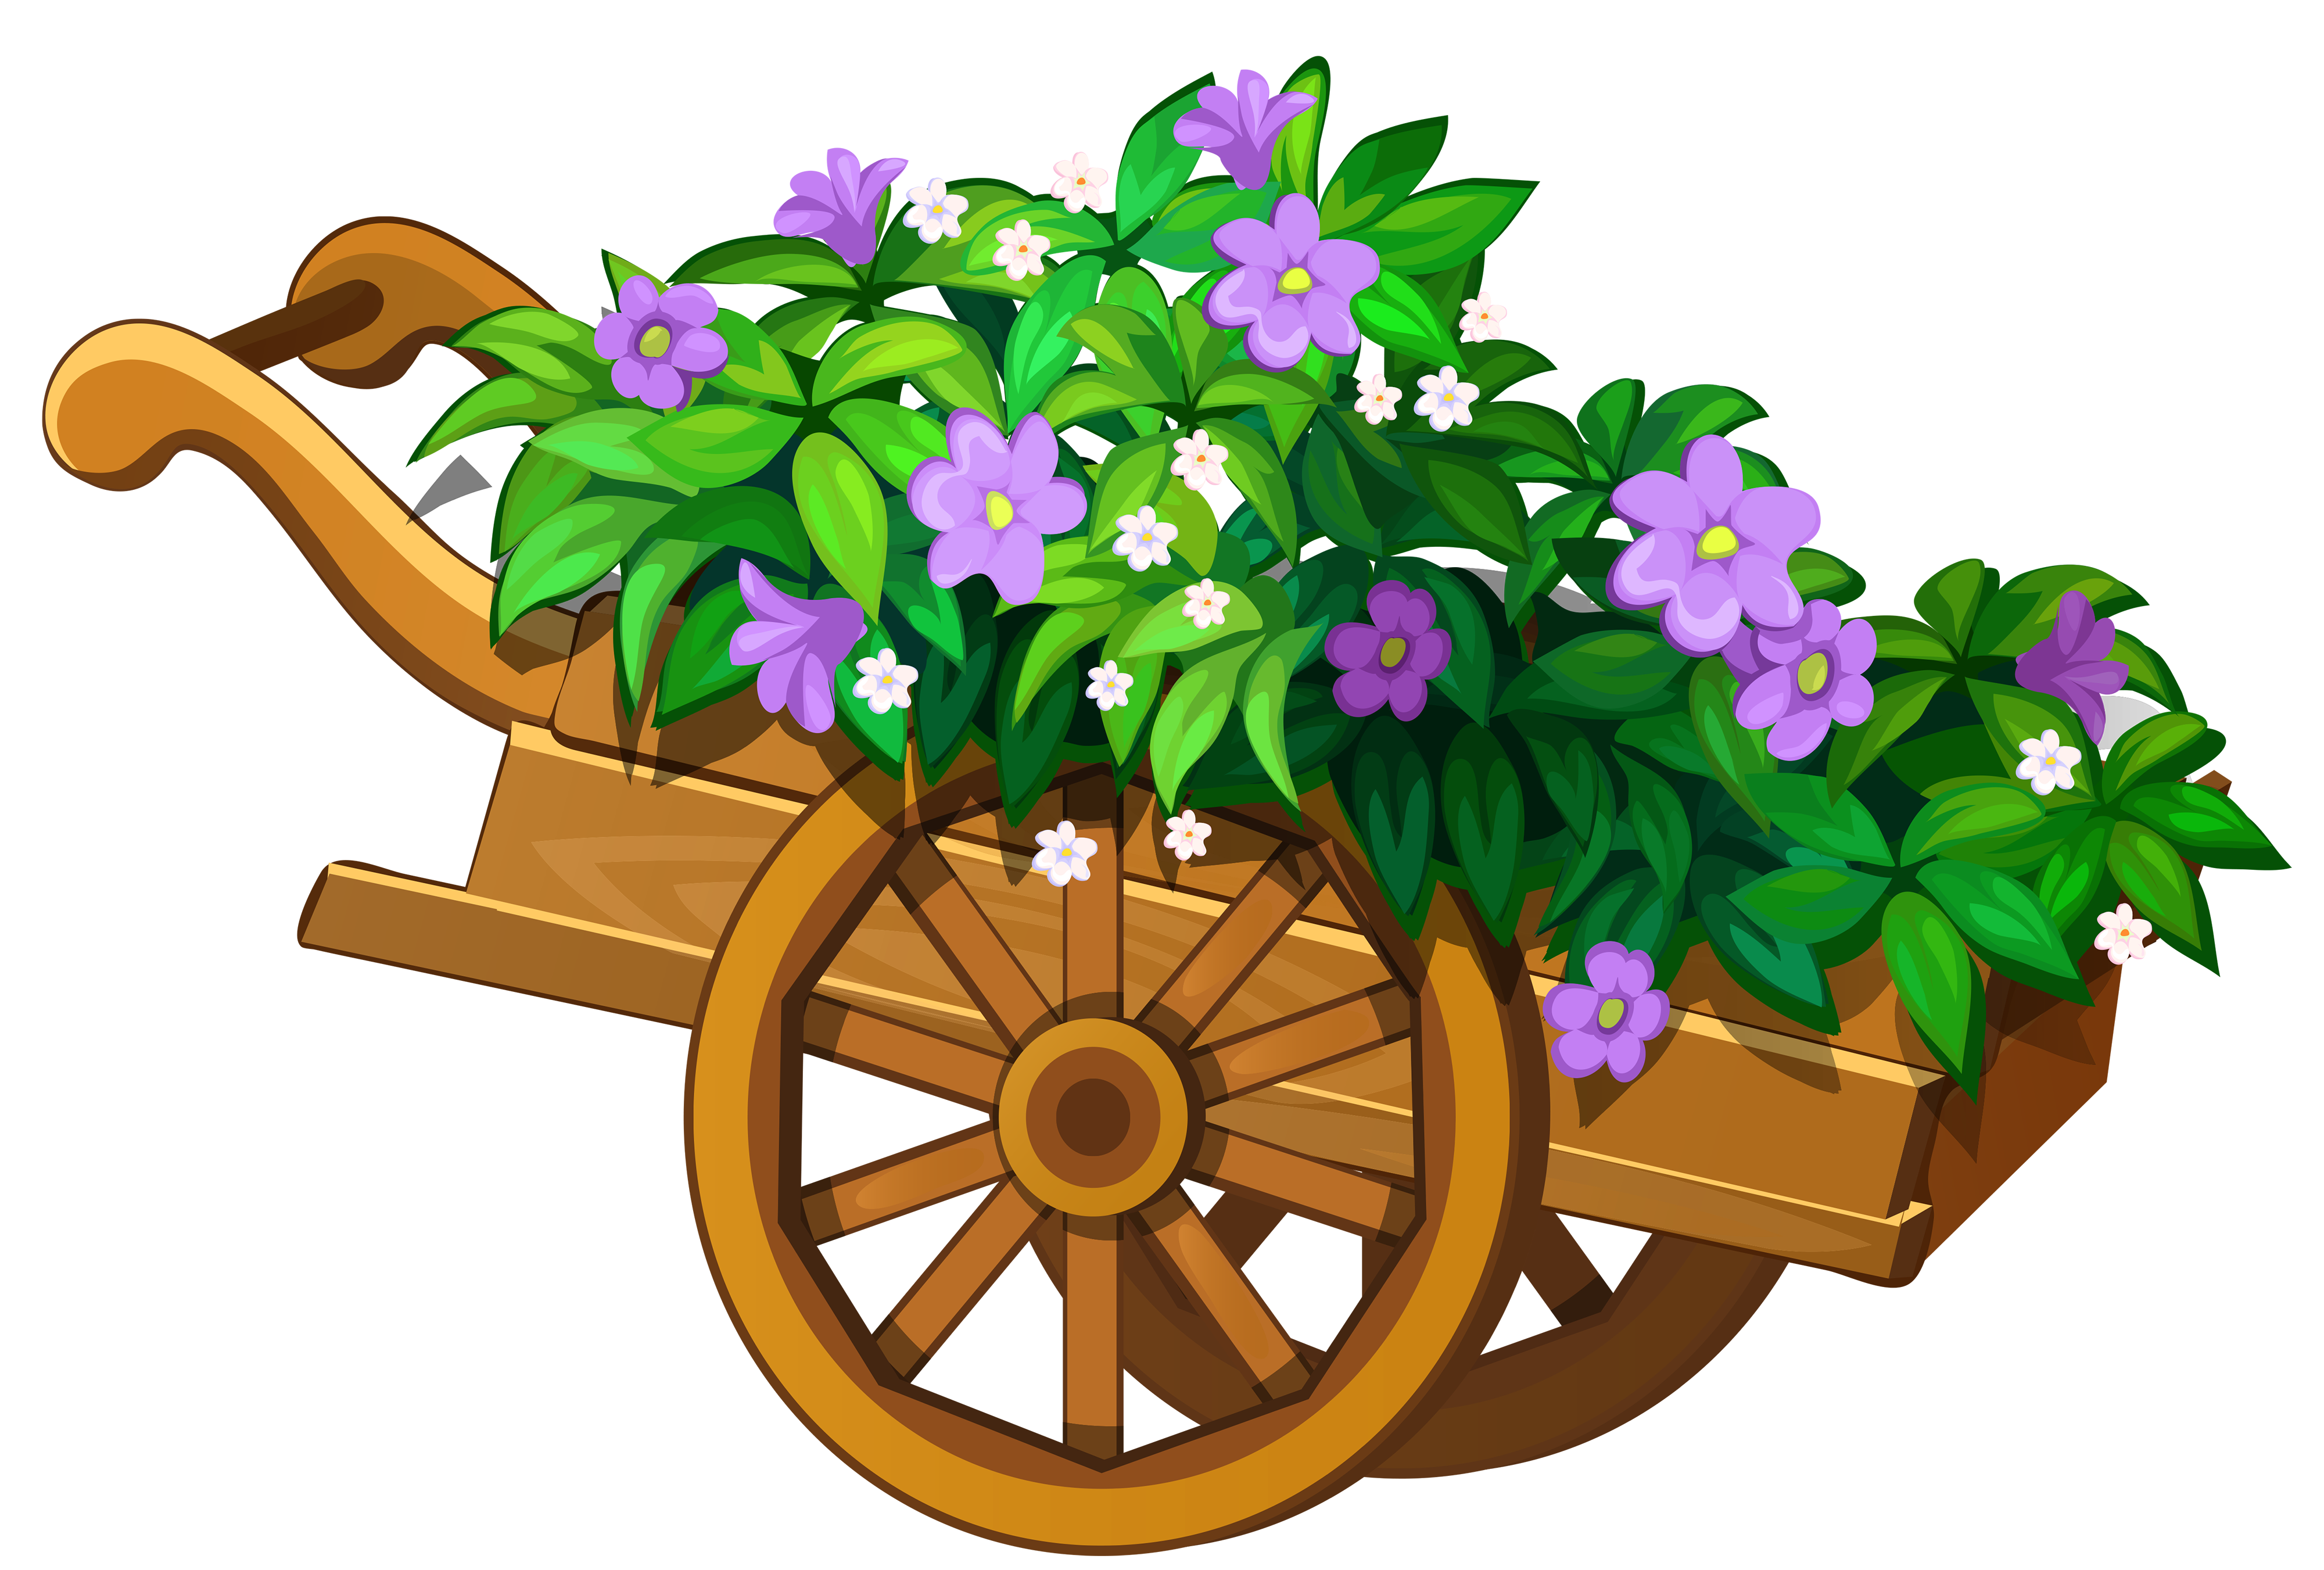 graphic free library Wheelbarrow clipart spring flower. Wooden garden with flowers